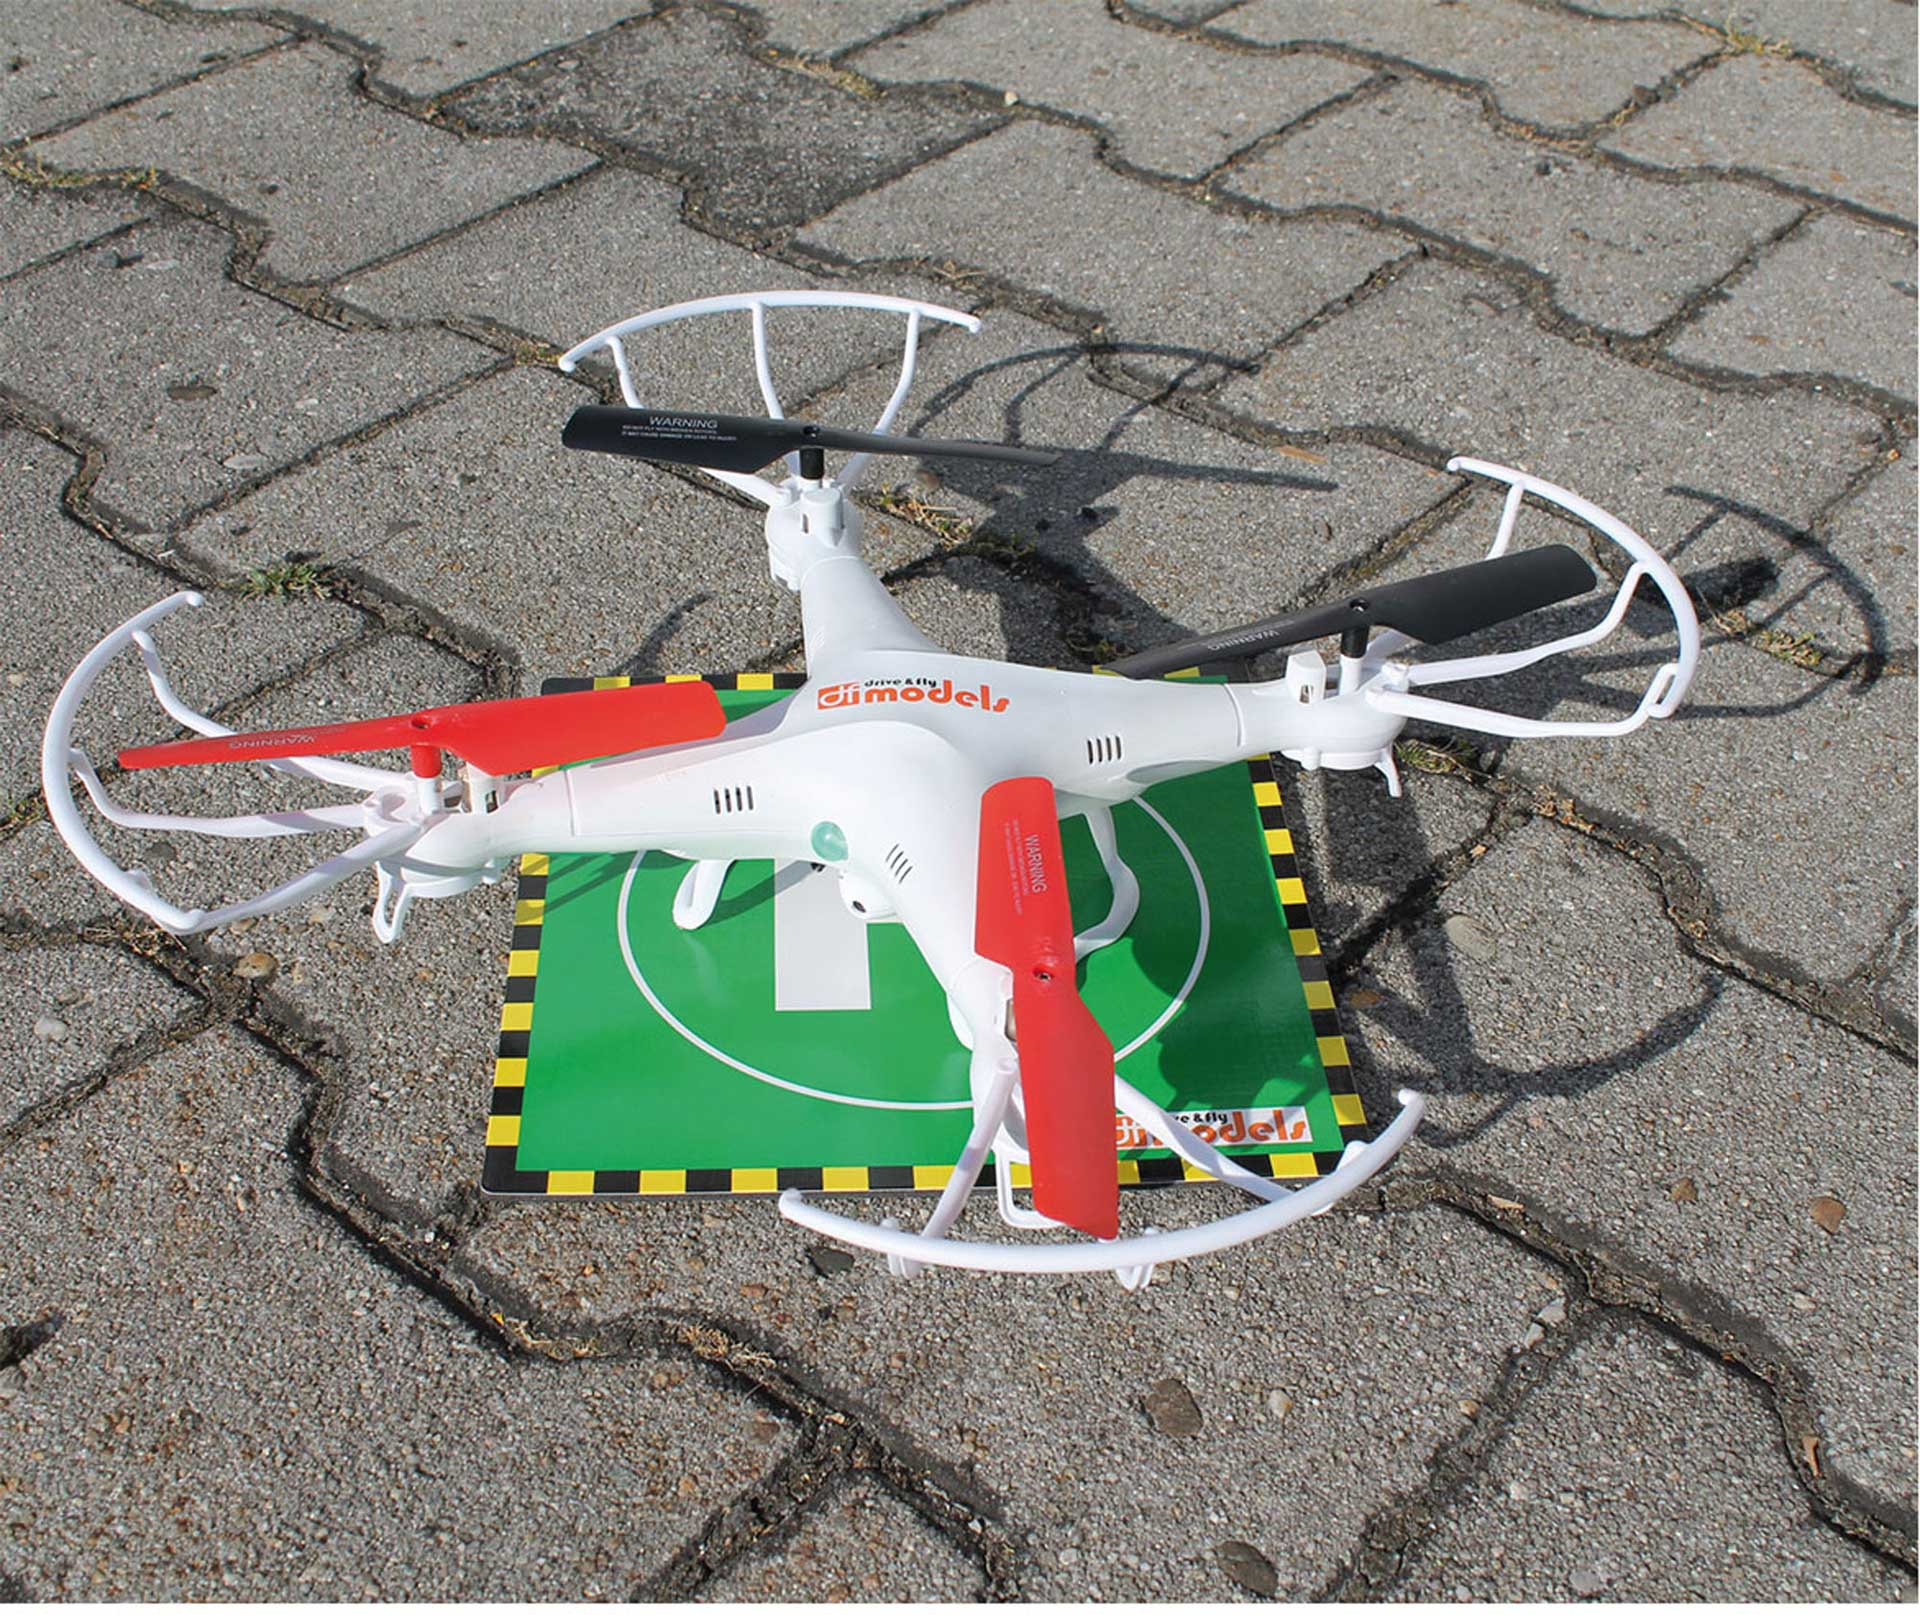 DRIVE & FLY MODELS HELI / MULTICOPTER LANDEPAD HELIPAD